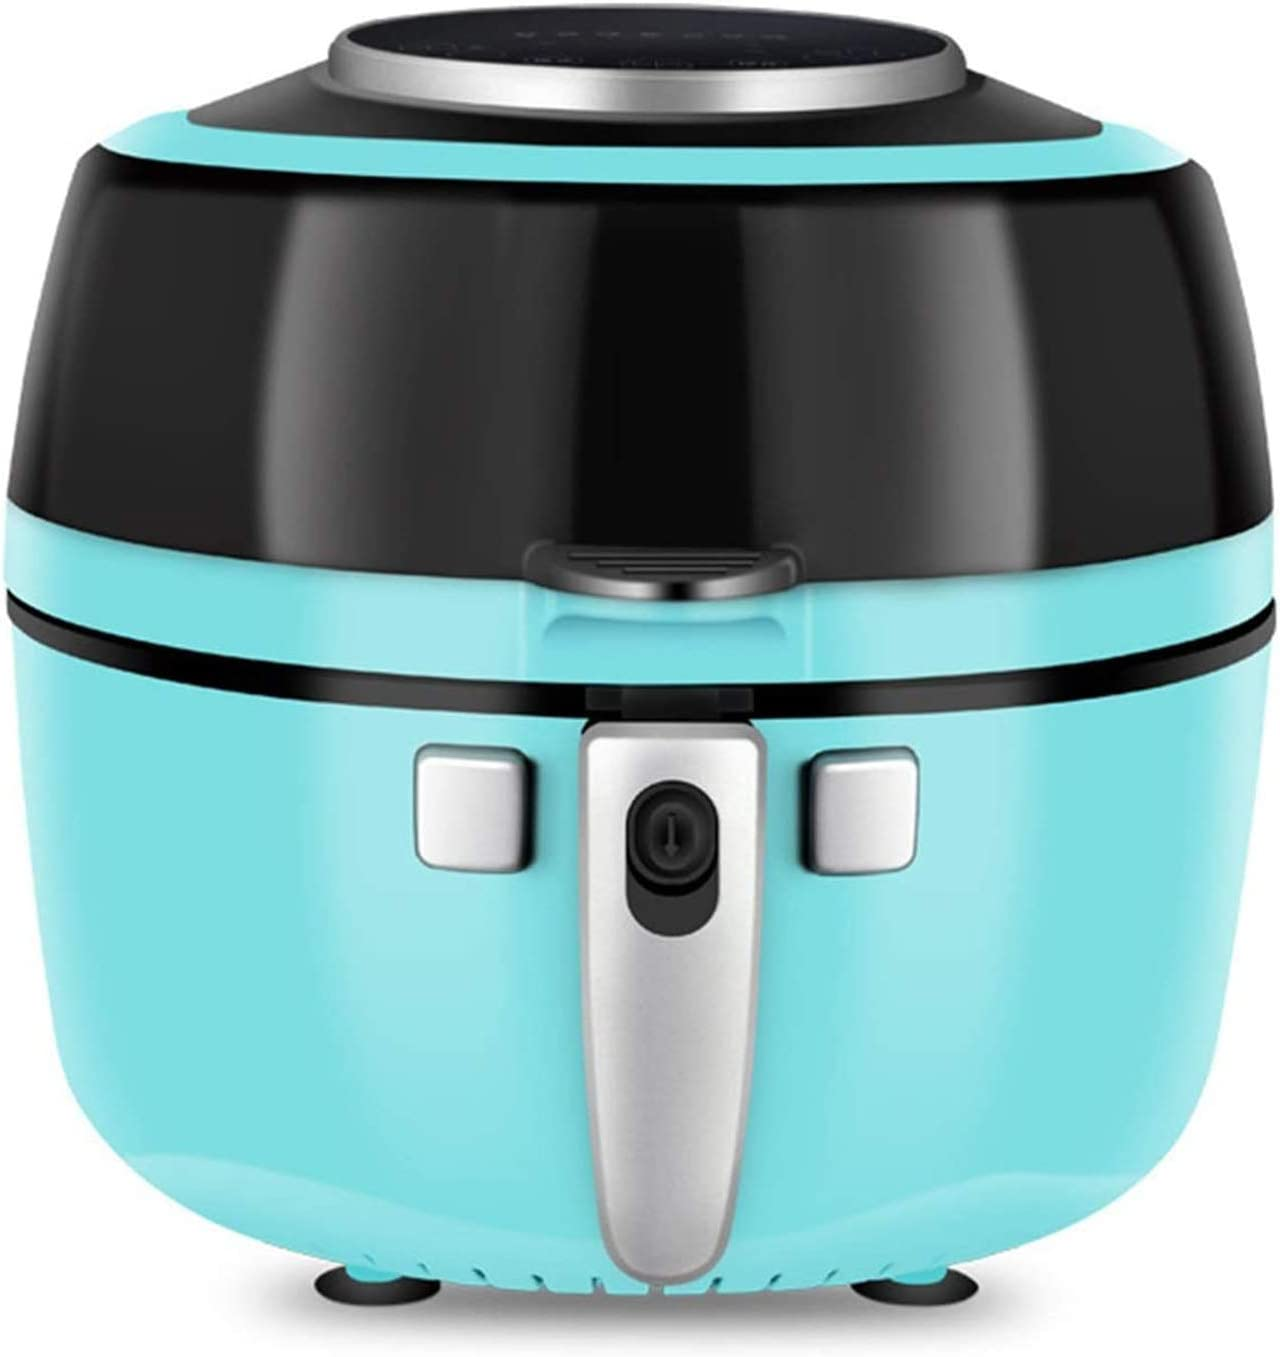 SSCYHT Air Fryer Oilless San Jose Mall Cooker French Timer Fries Max 43% OFF Machine Oi 8l